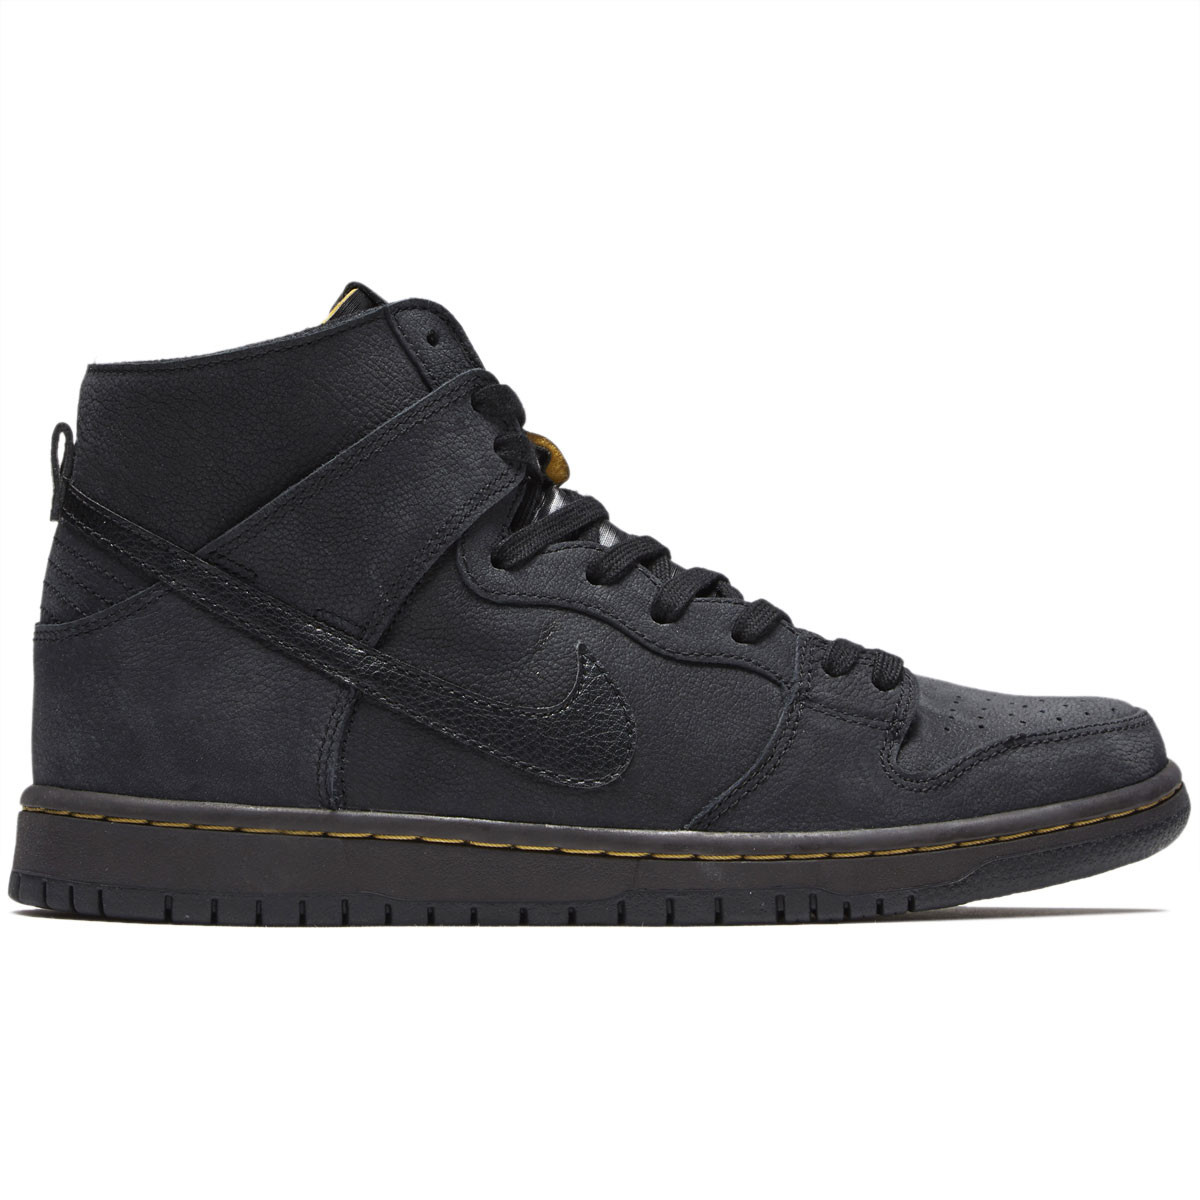 Nike SB Zoom Dunk High Pro Deconstructed Premium Shoes - Black Black Velvet  Brown 81f80d917